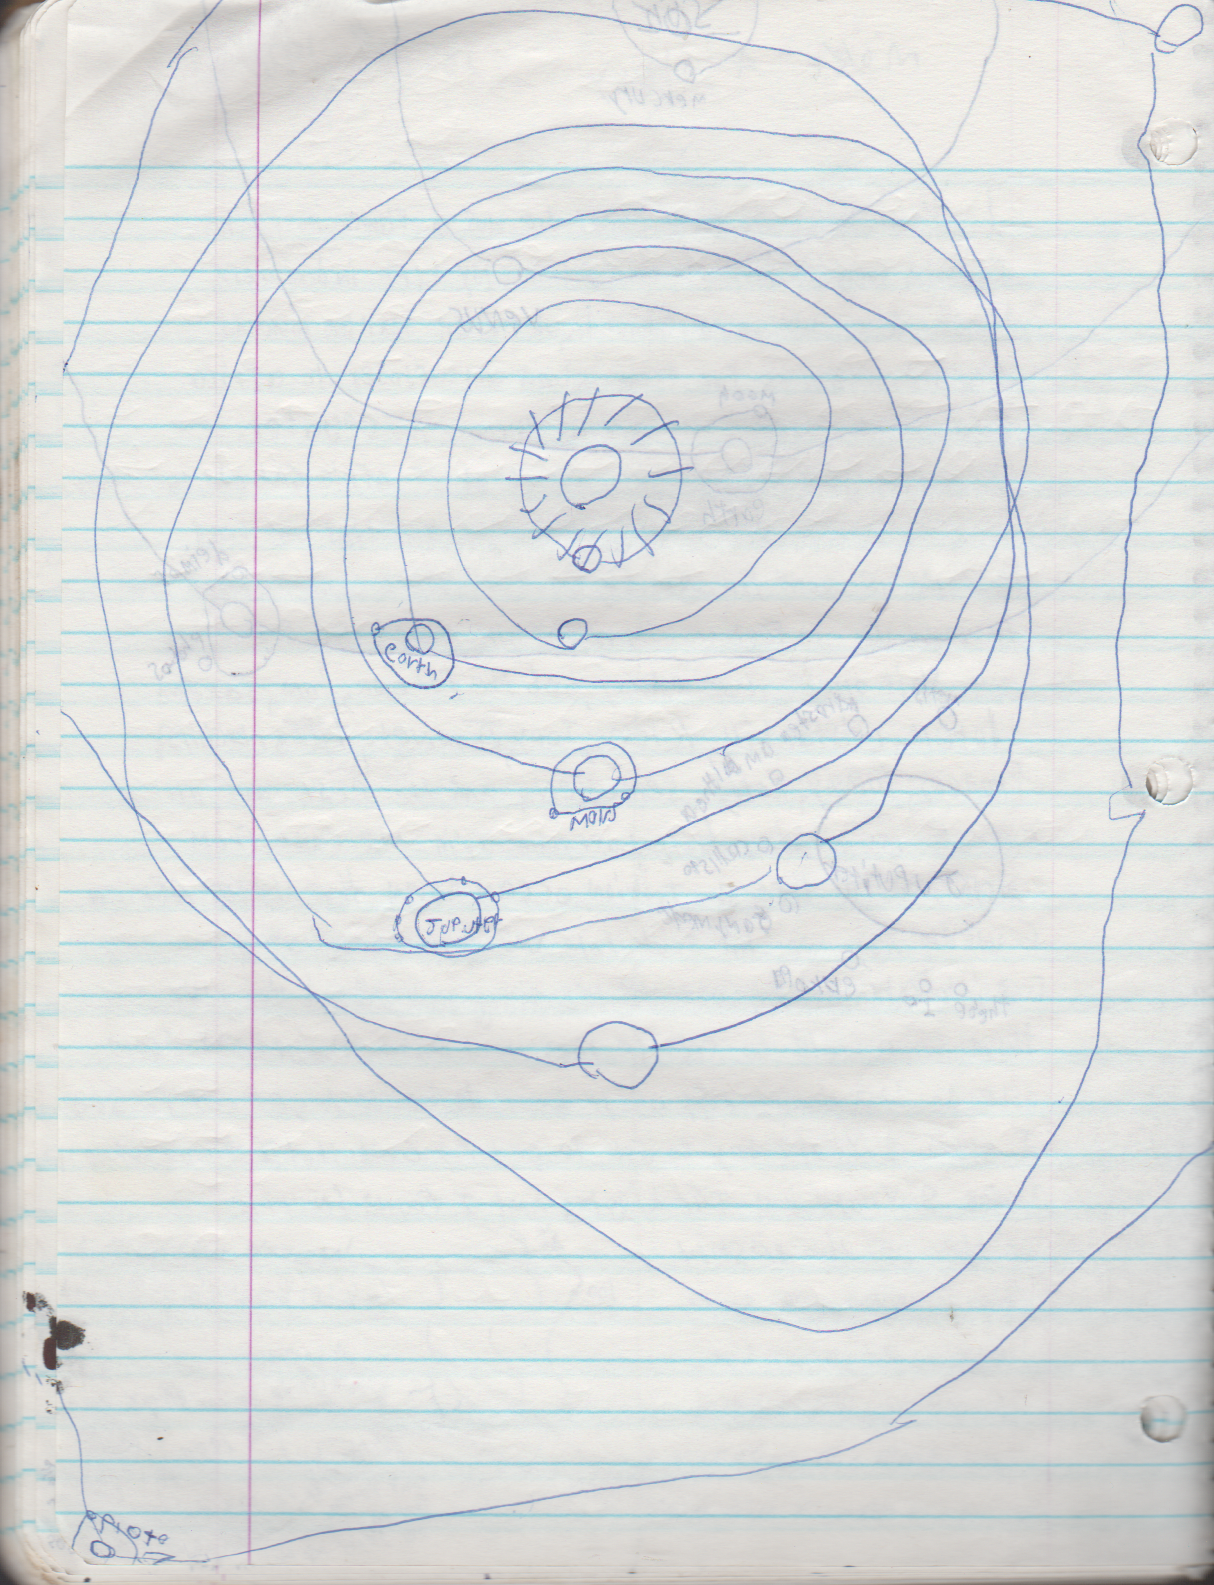 1996-08-18 - Saturday - 11 yr old Joey Arnold's School Book, dates through to 1998 apx, mostly 96, Writings, Drawings, Etc-094.png